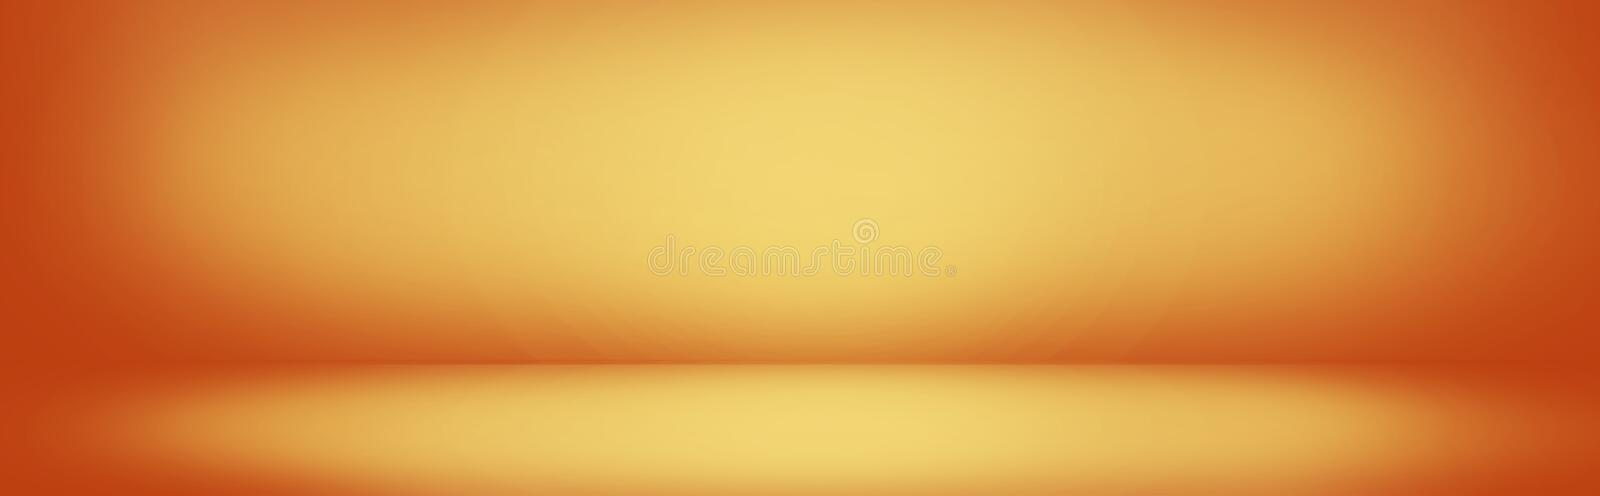 yellow and orange gradient wall banner, blank studio room background for present product royalty free illustration